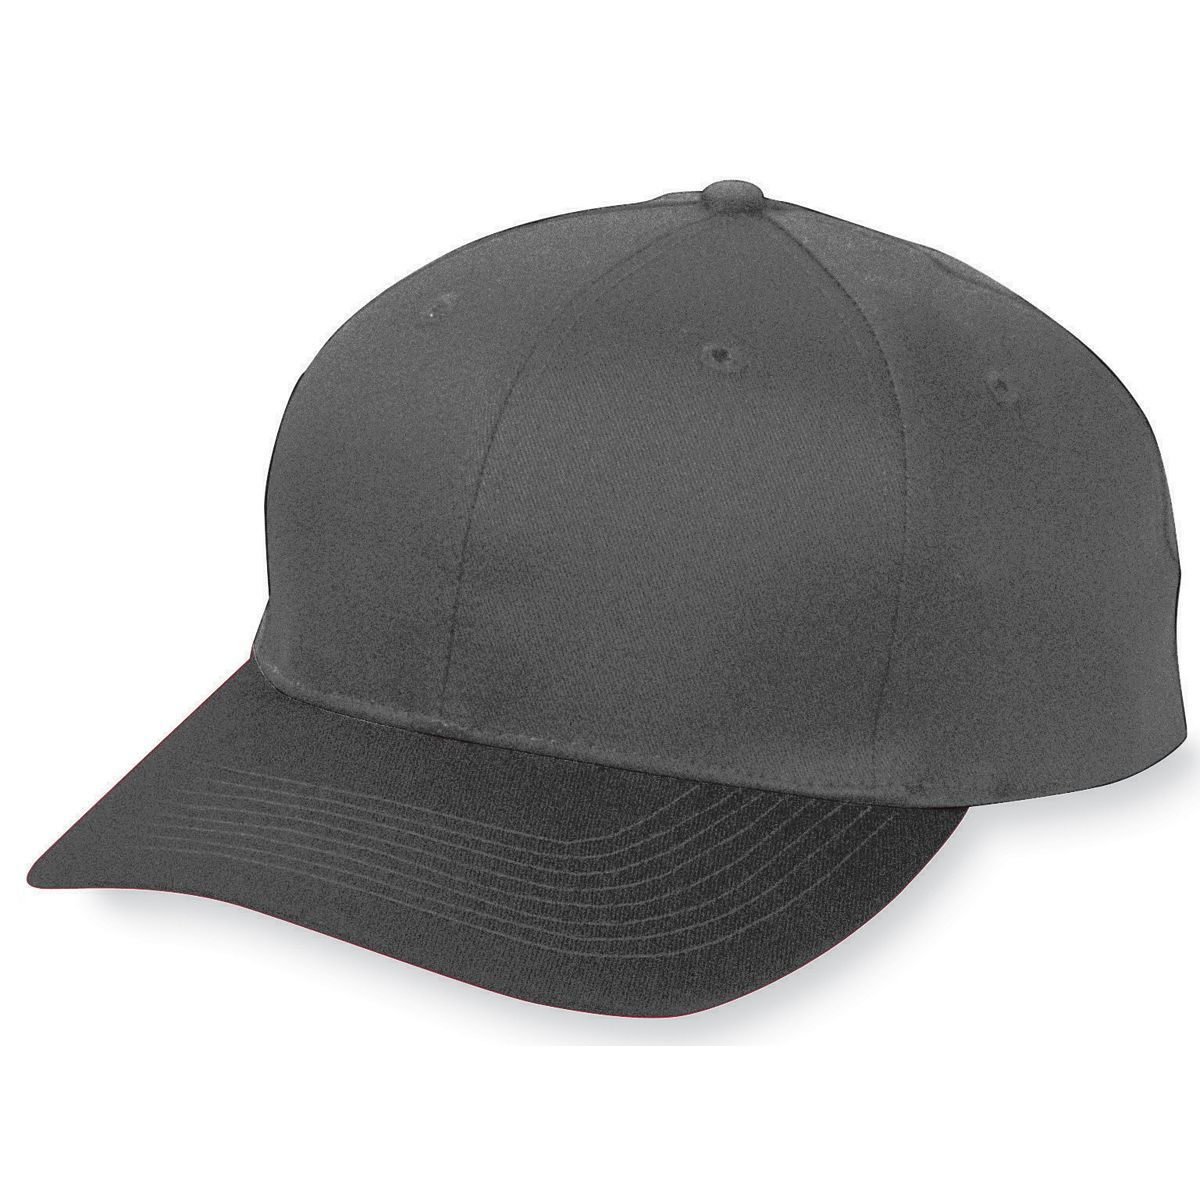 Youth Six-Panel Cotton Twill Low-Profile Cap - BLACK